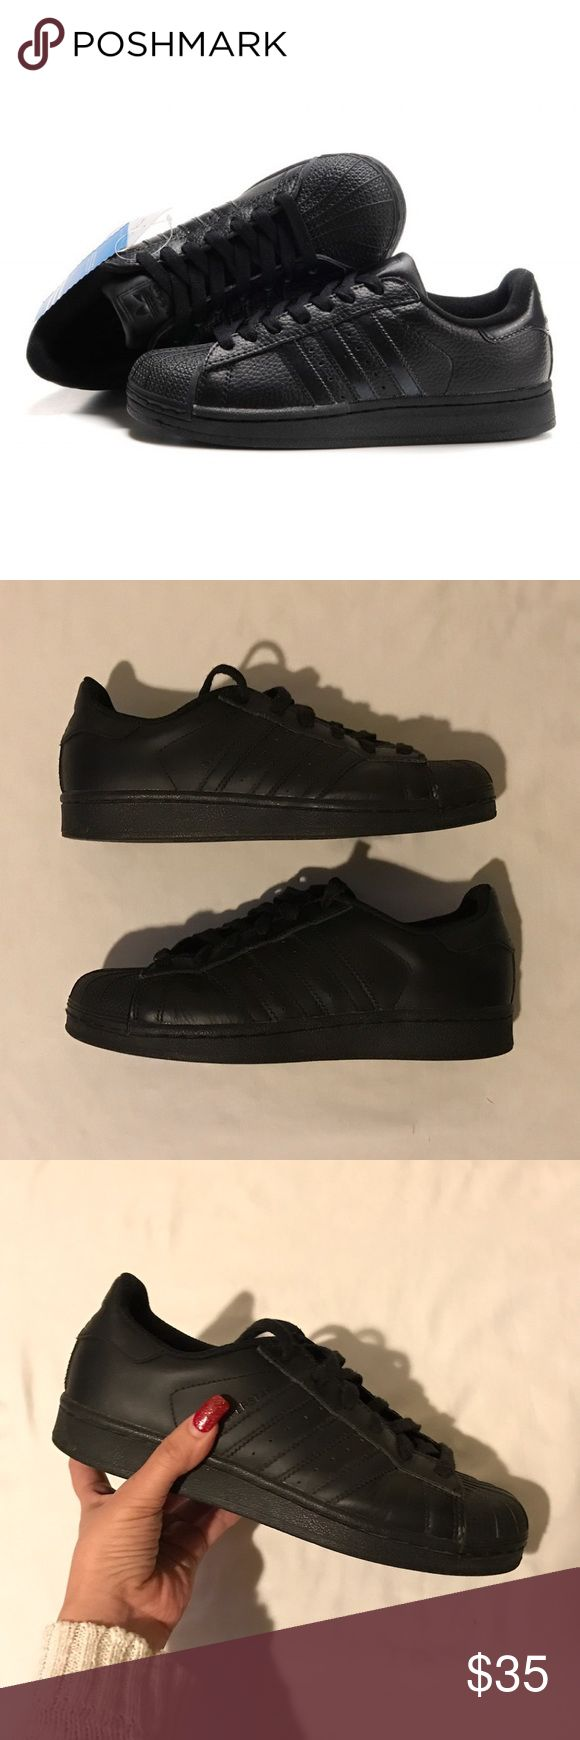 All black adidas superstar Good condition all black adidas superstar. Only worn to work. ✨ Adidas Shoes Sneakers